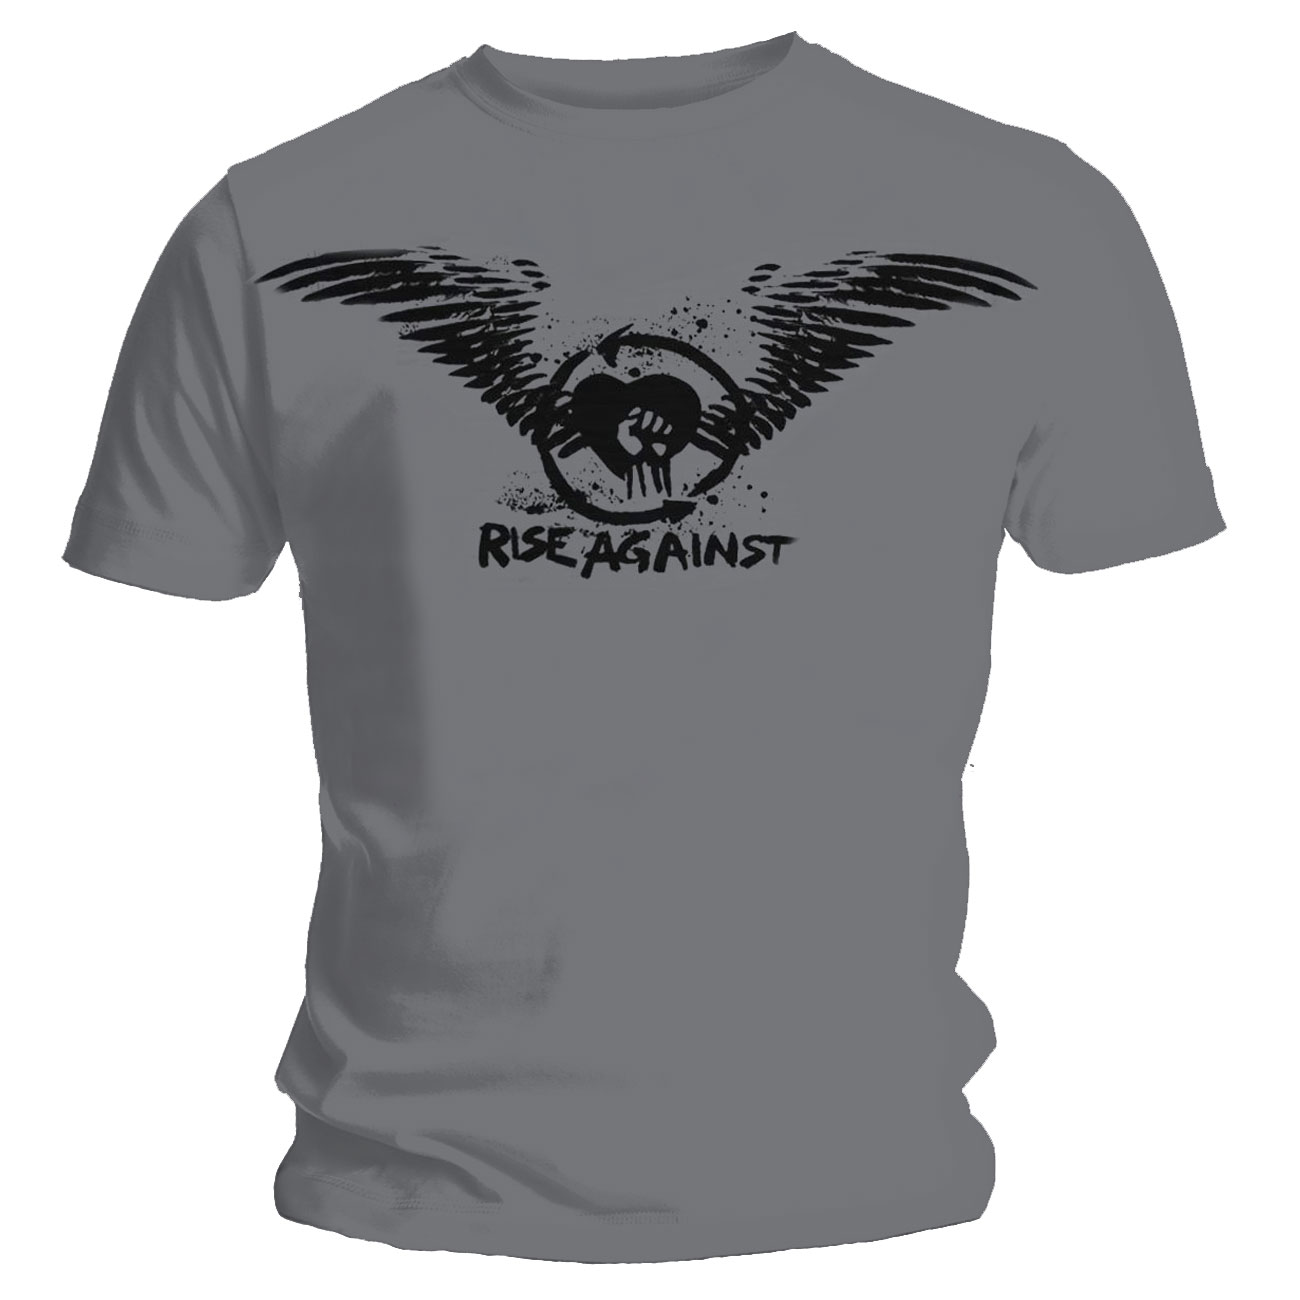 Rise Against T Shirt Paper Wings. Emi Music officially licensed t-shirt.